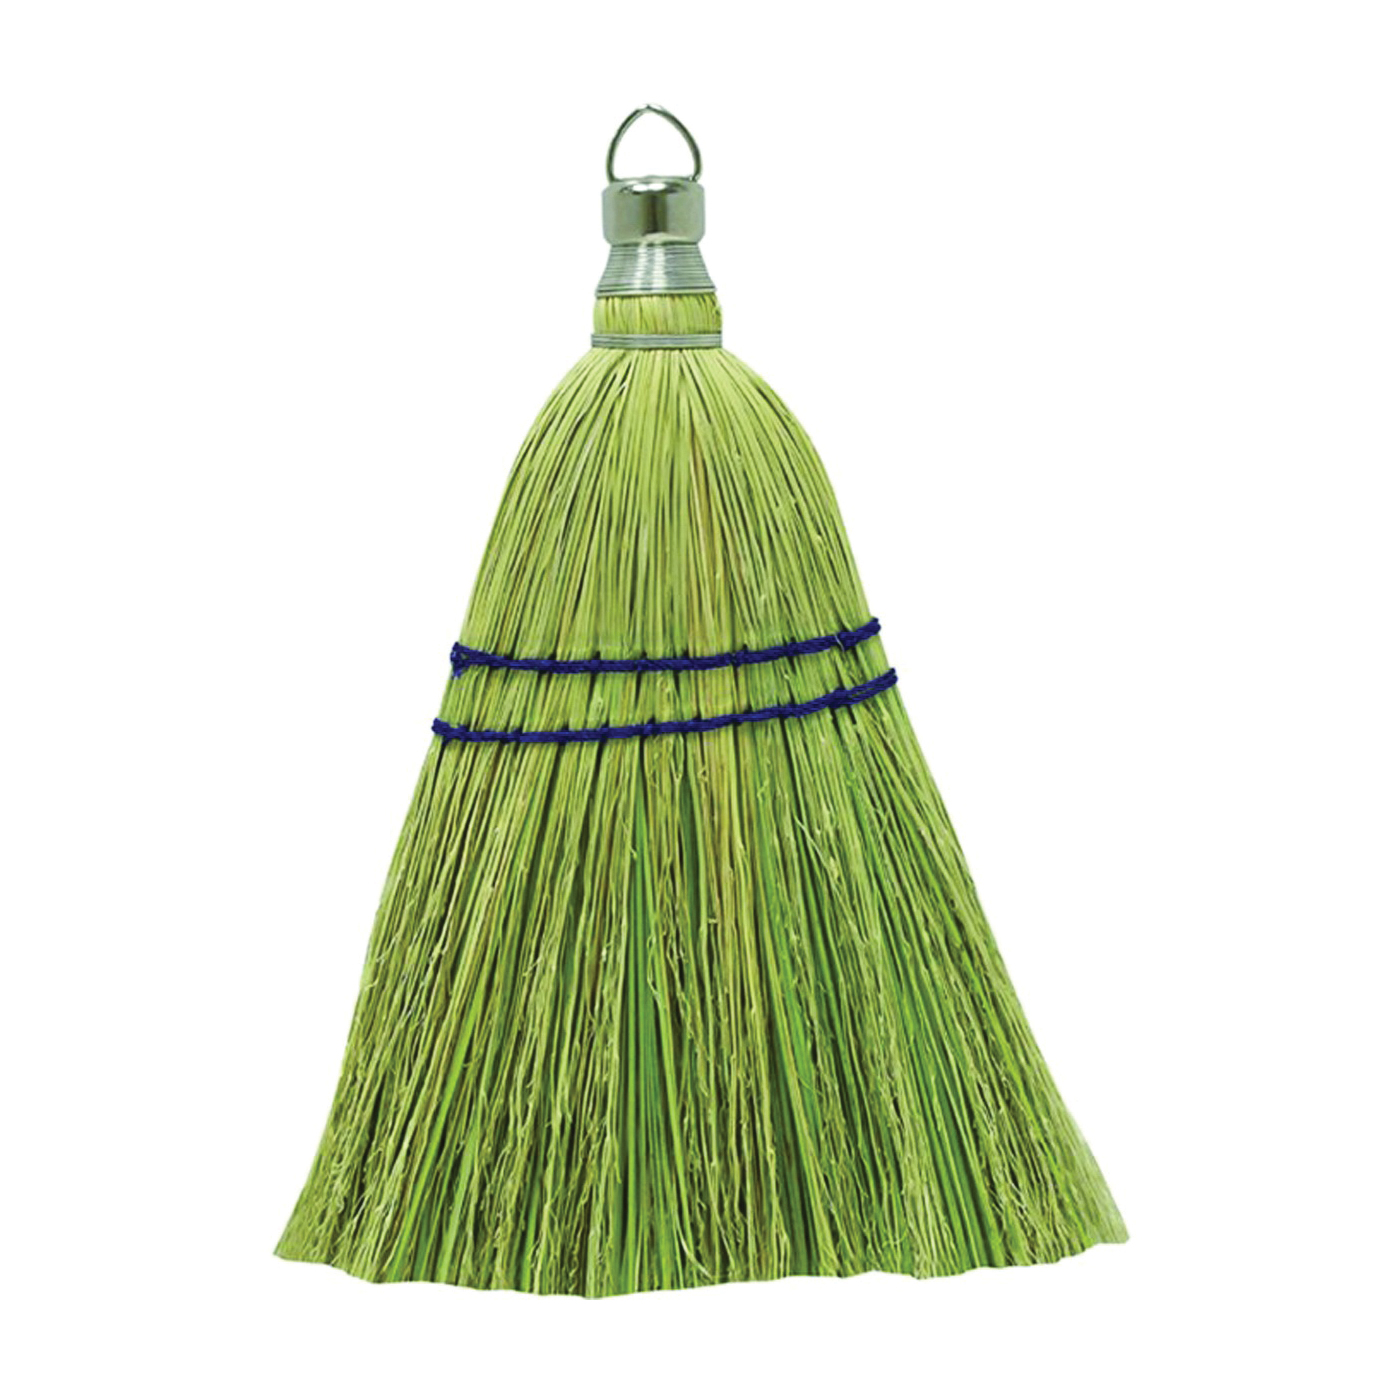 Picture of Quickie 424 Whisk Broom, 7-1/4 in Sweep Face, Fiber Bristle, 12 in OAL